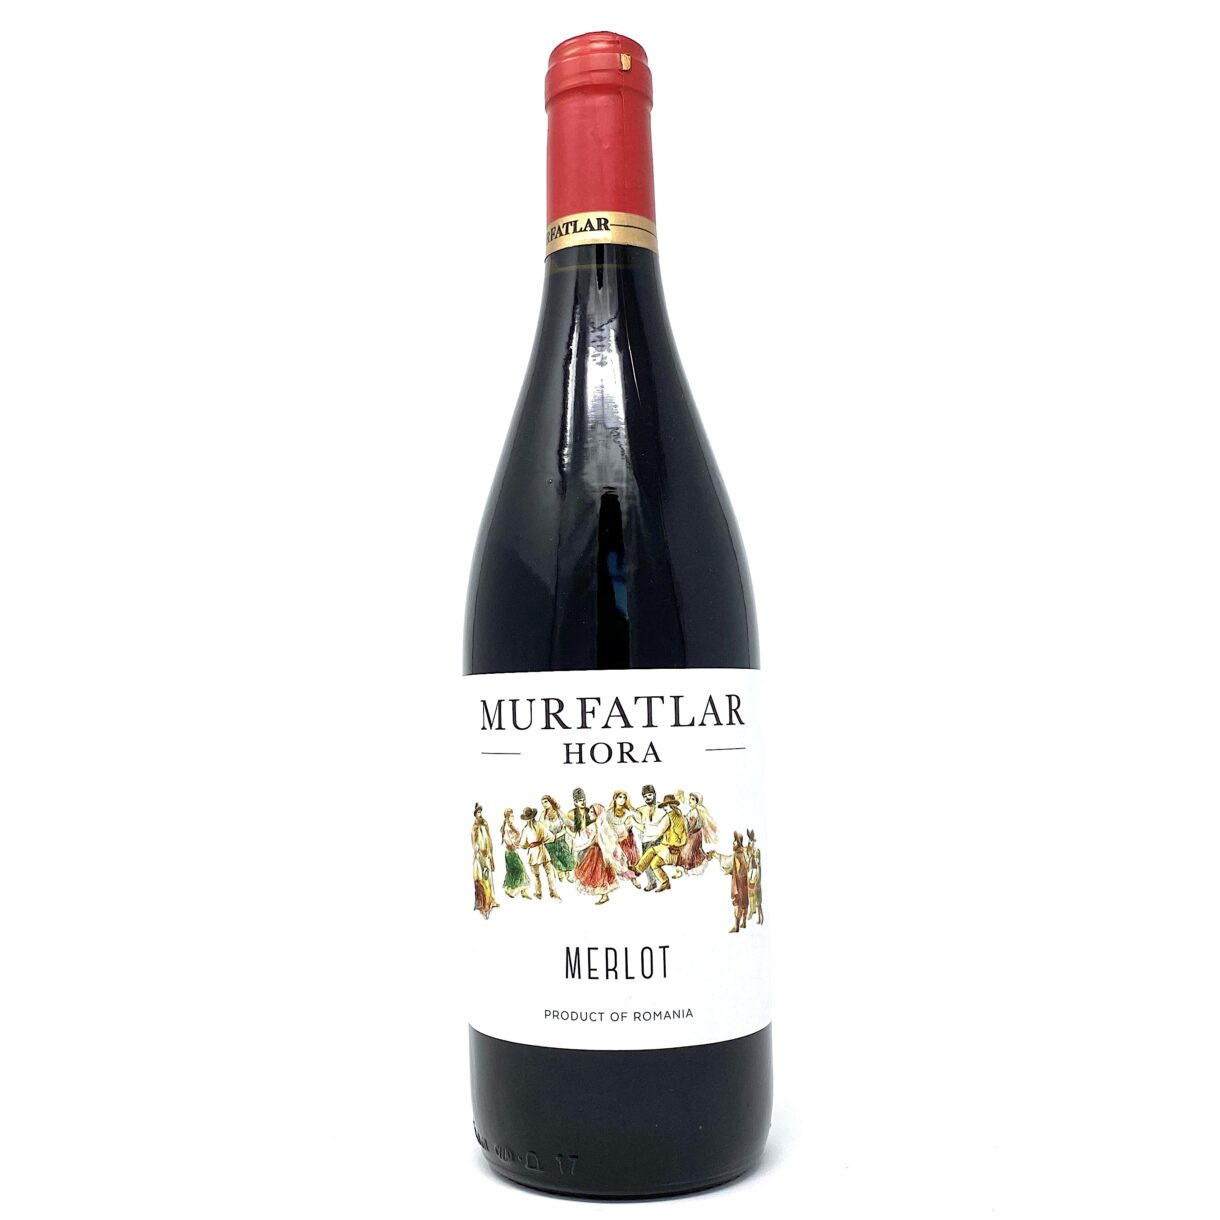 Murfatlar Hora Merlot  Romanian Red Wine 750ml